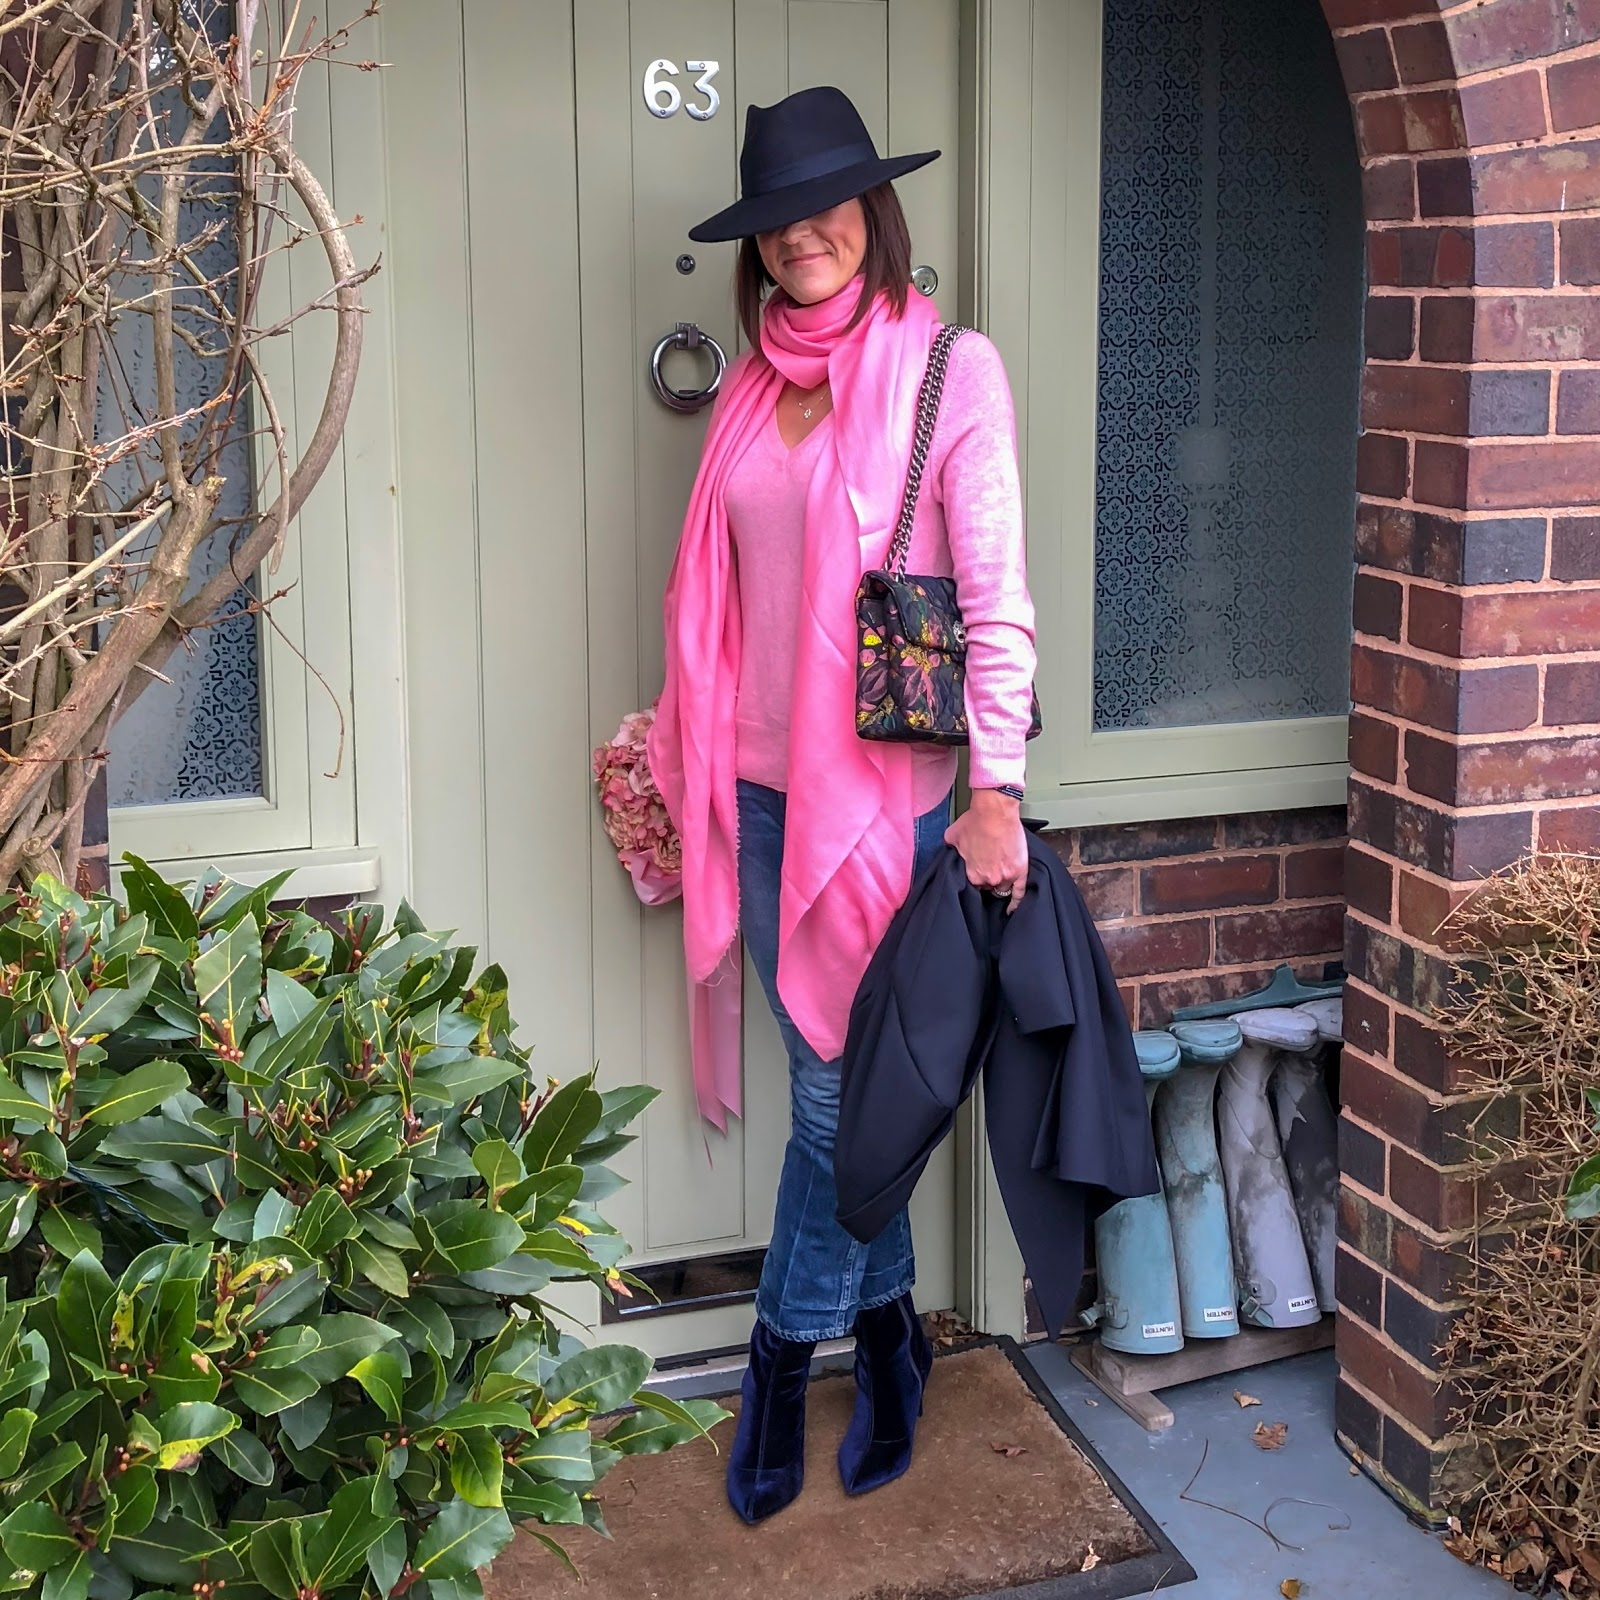 my midlife fashion, kurt geiger fabric kensington bag, marks and spencer pure cashmere v neck jumper, cashmere pashmina, j crew cropped kick flare jeans, marks and spencer stiletto heel side zip ankle boots, hobbs felt fedora hat, tommy hilfiger celeste classic coat